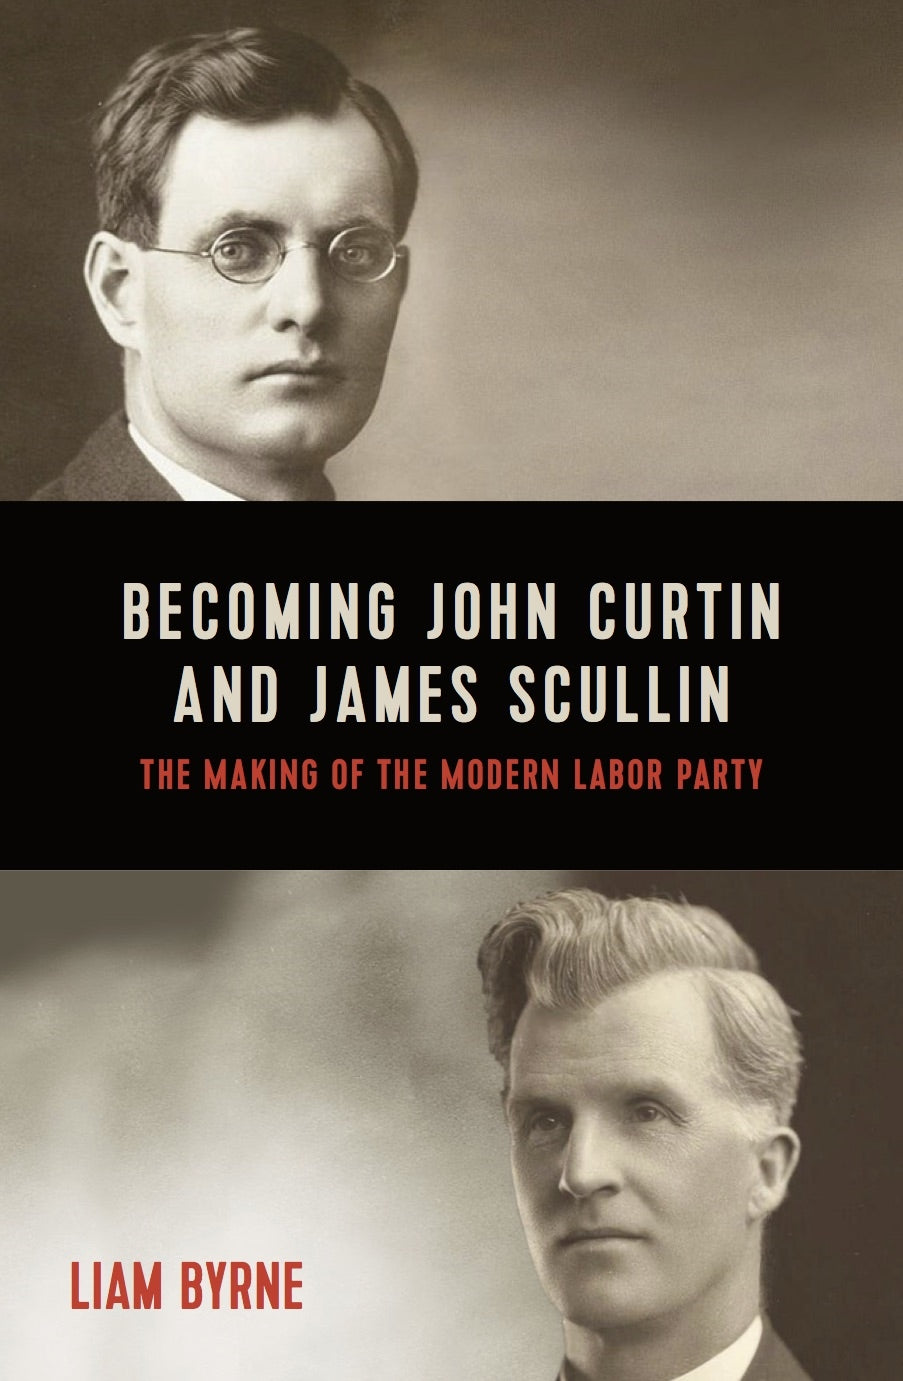 Becoming John Curtain and James Scullin by Liam Byrne